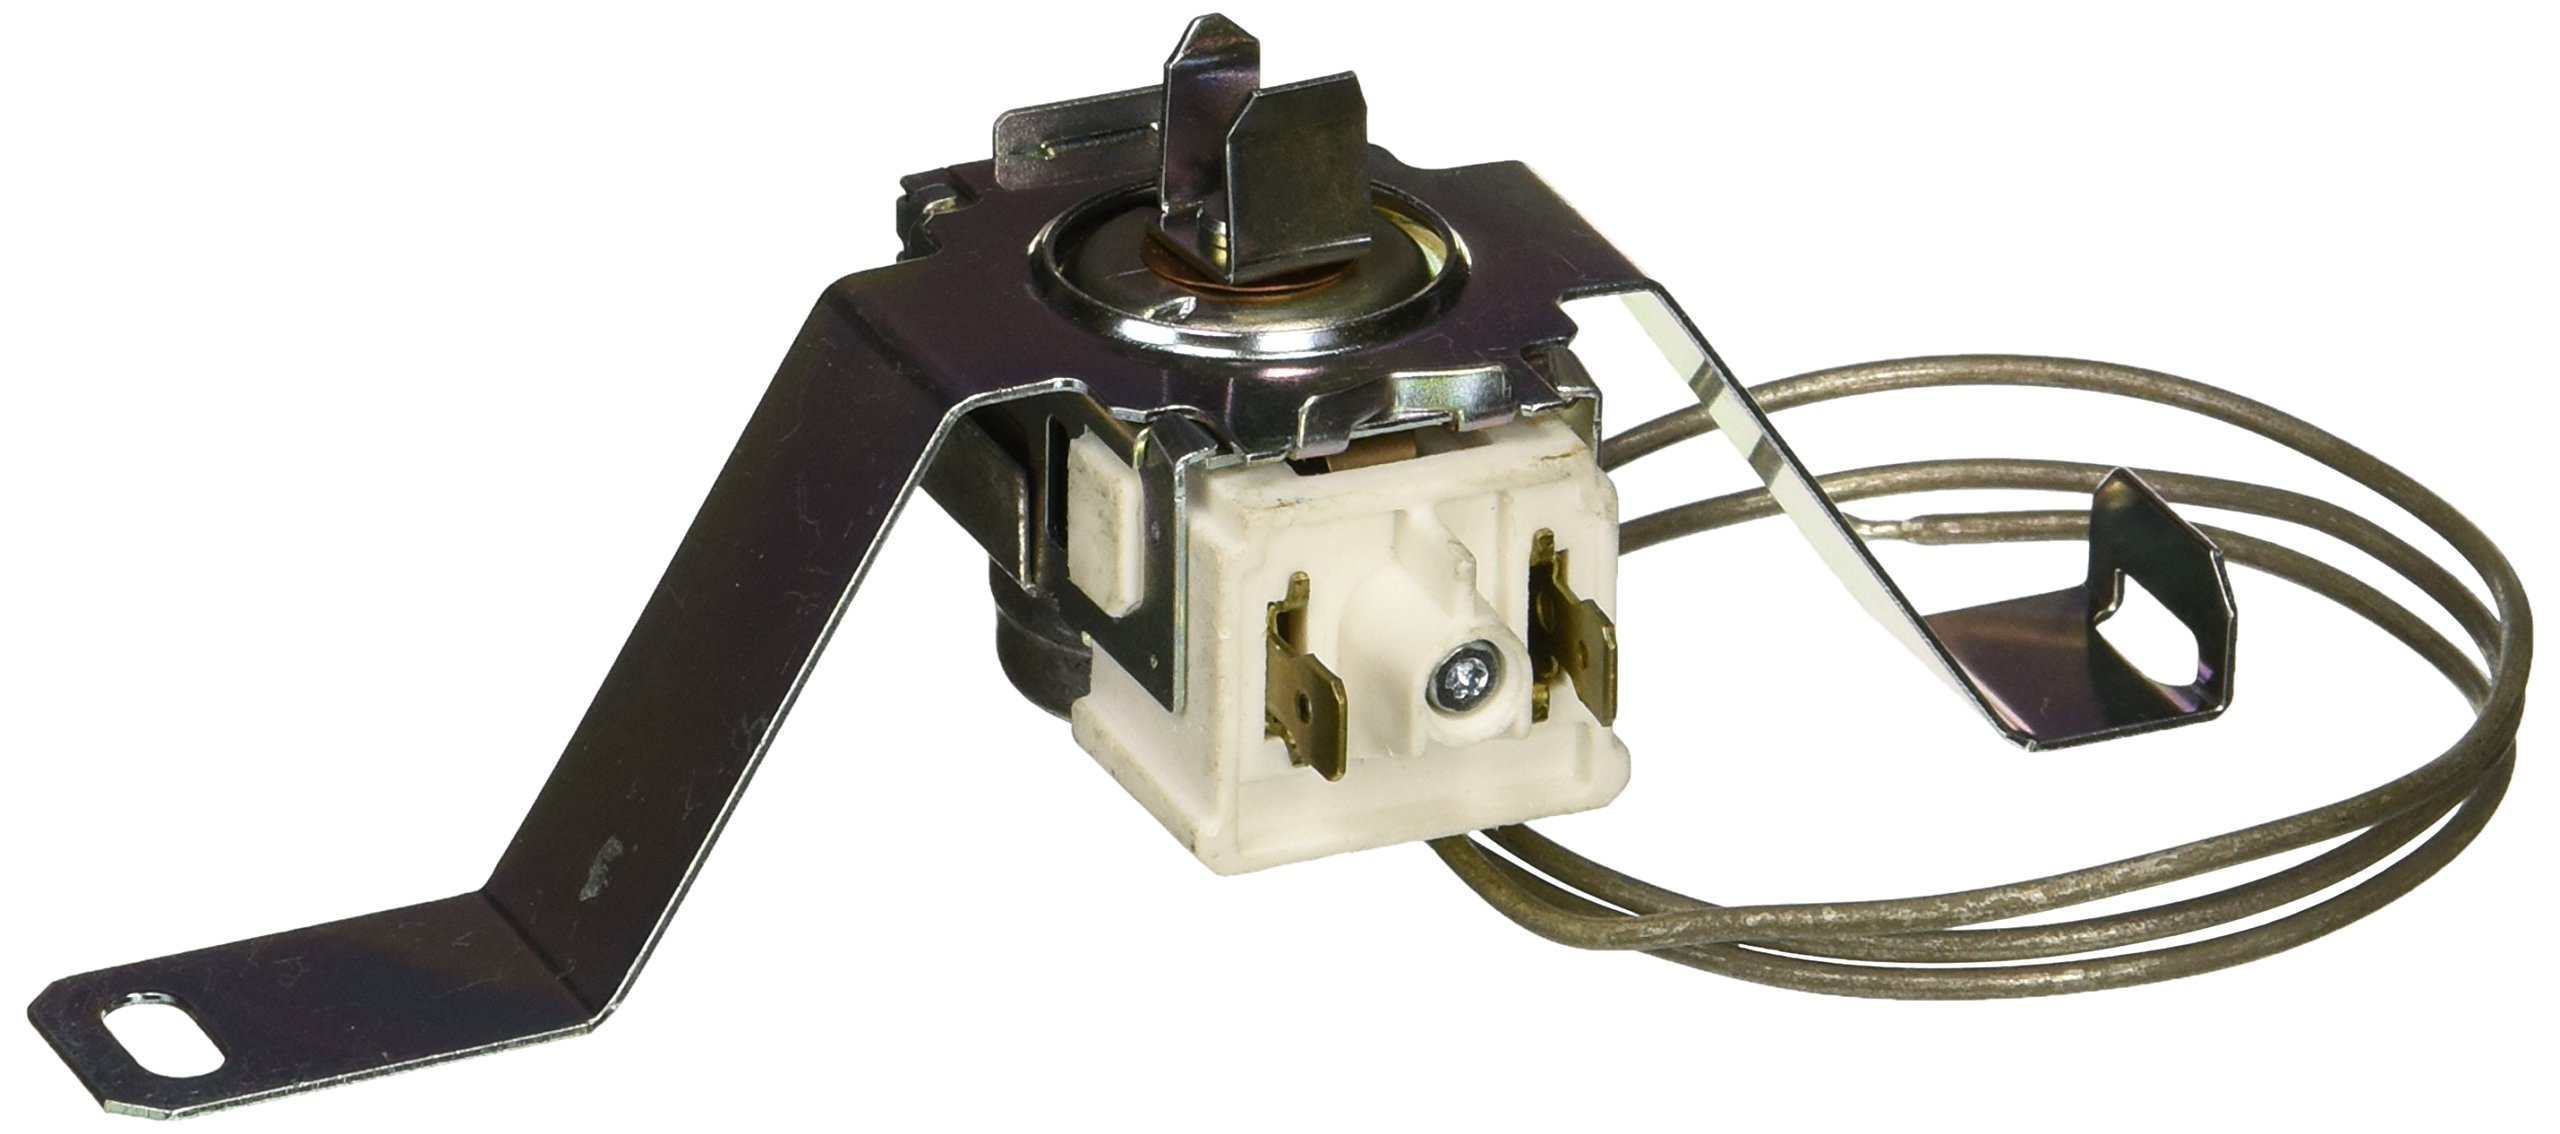 Whirlpool Part Number 2210489: Thermostat Assembly